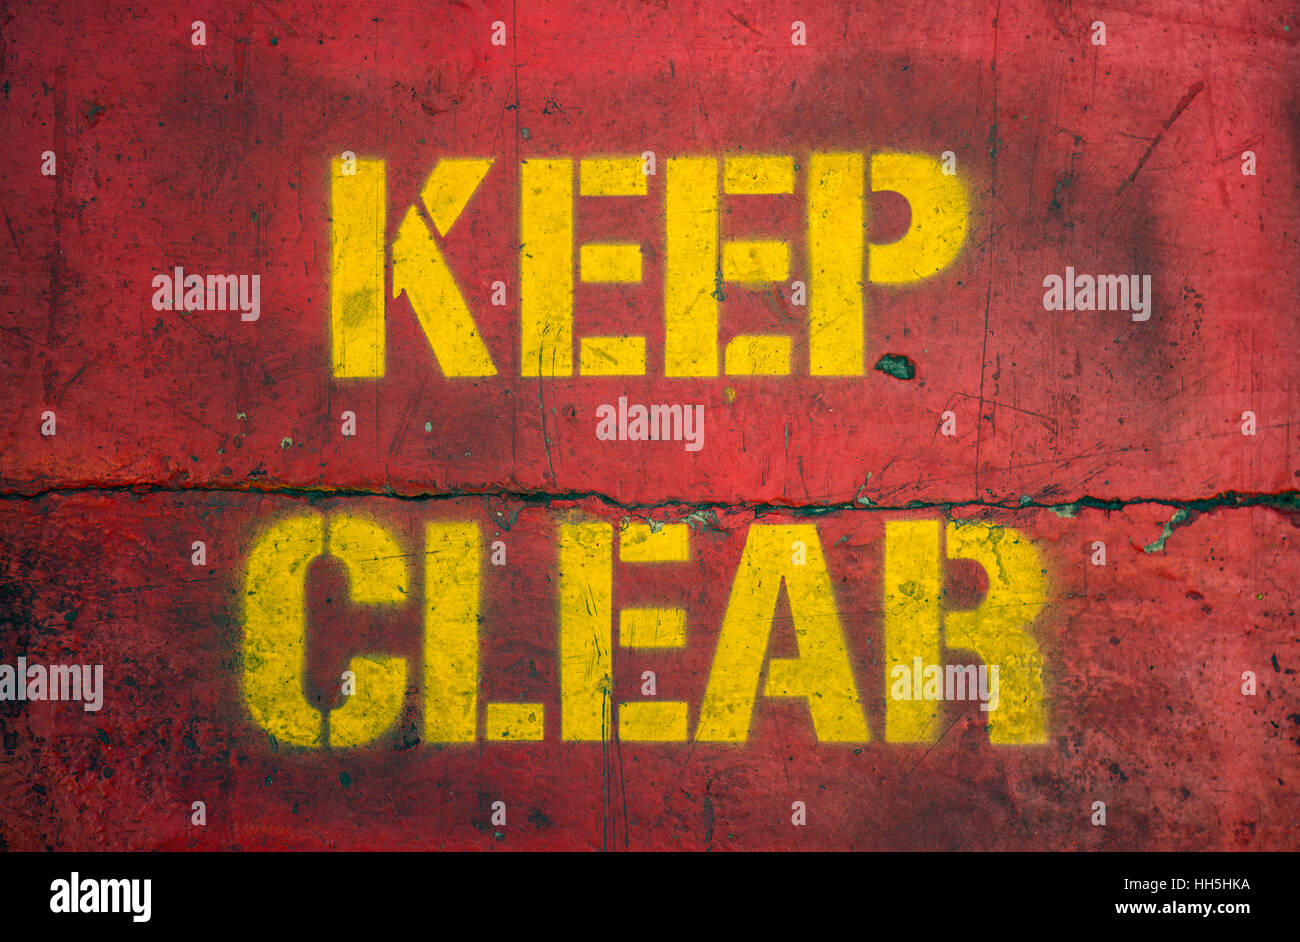 Worn and grungy Keep Clear sign stenciled on concrete. - Stock Image